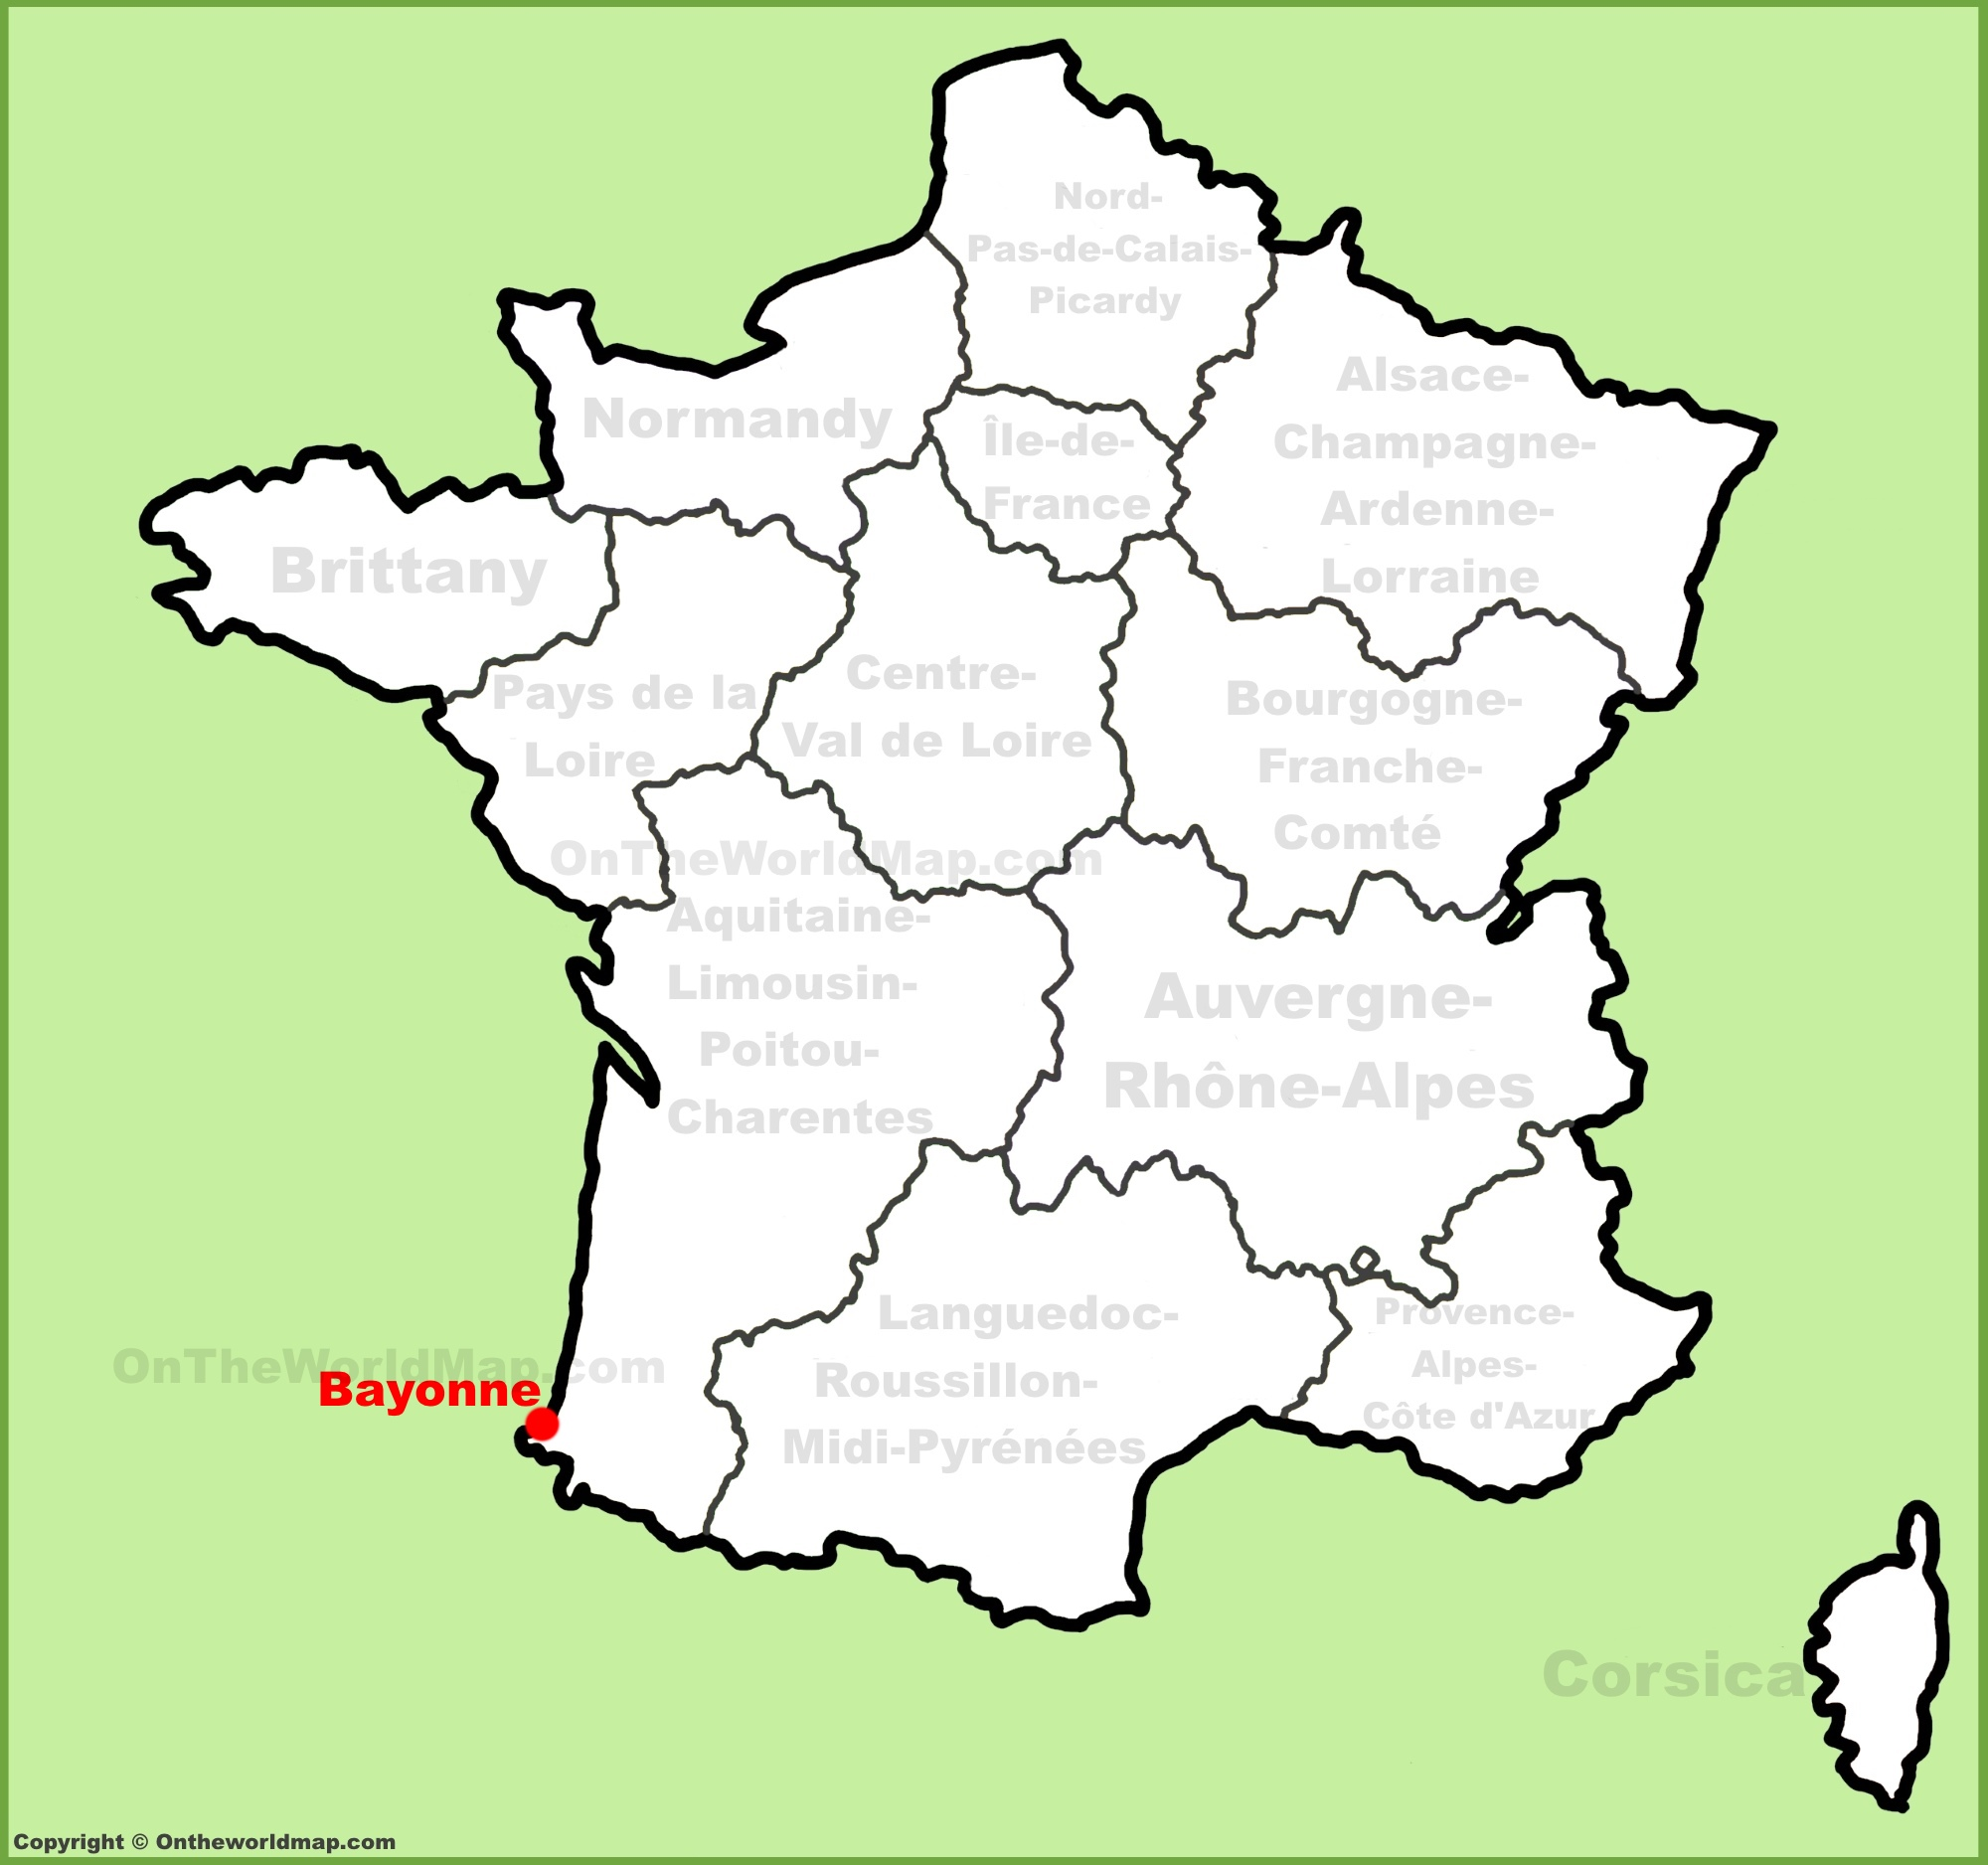 Bayonne location on the France map